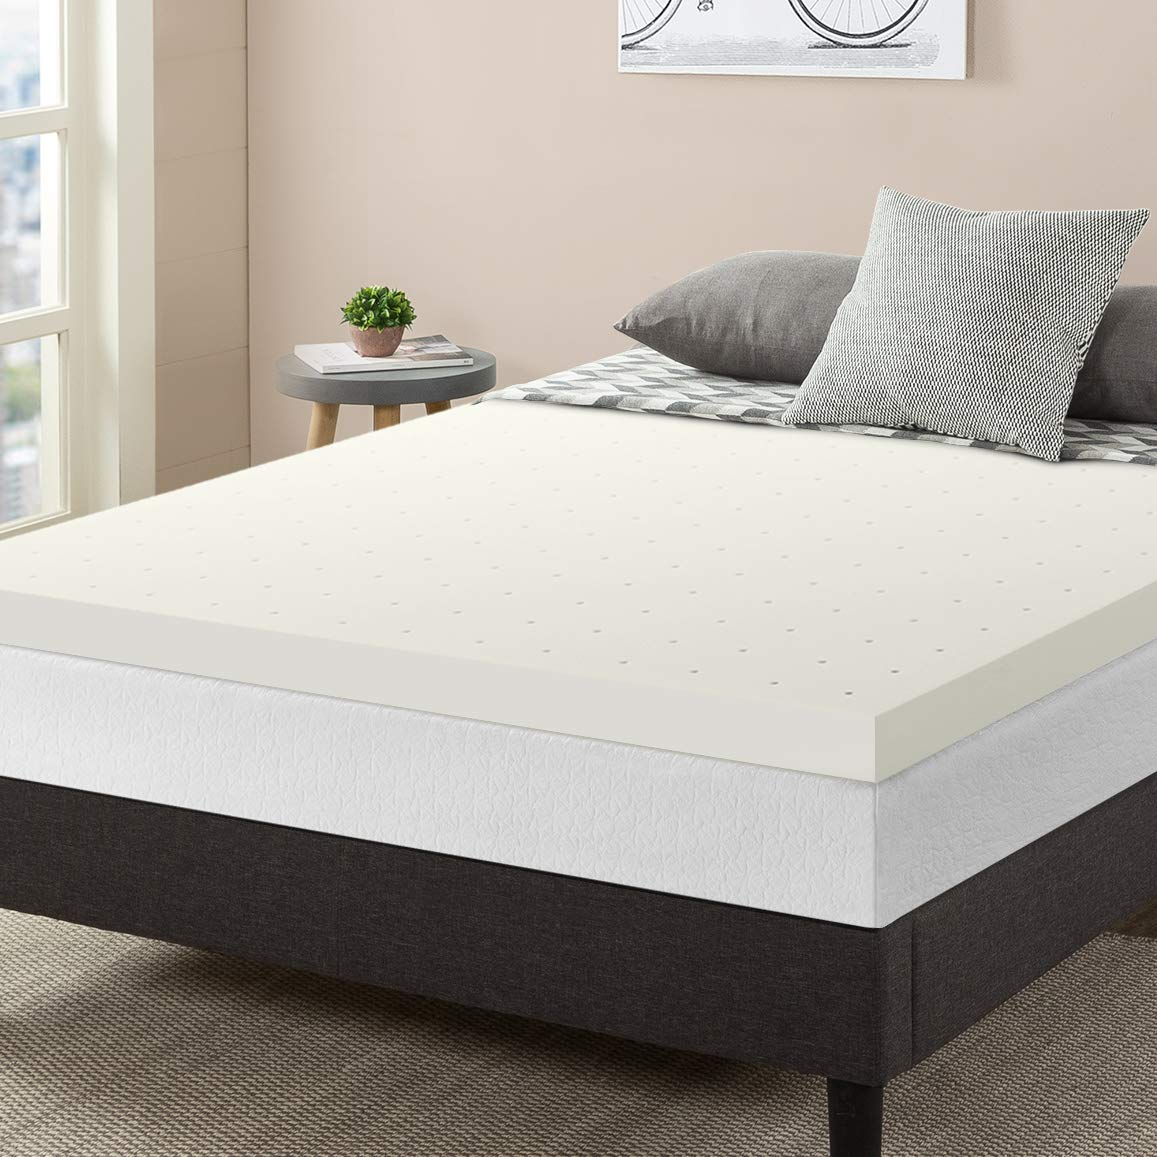 Amazoncom Best Price Mattress 3 Premium Ventilated Memory Foam